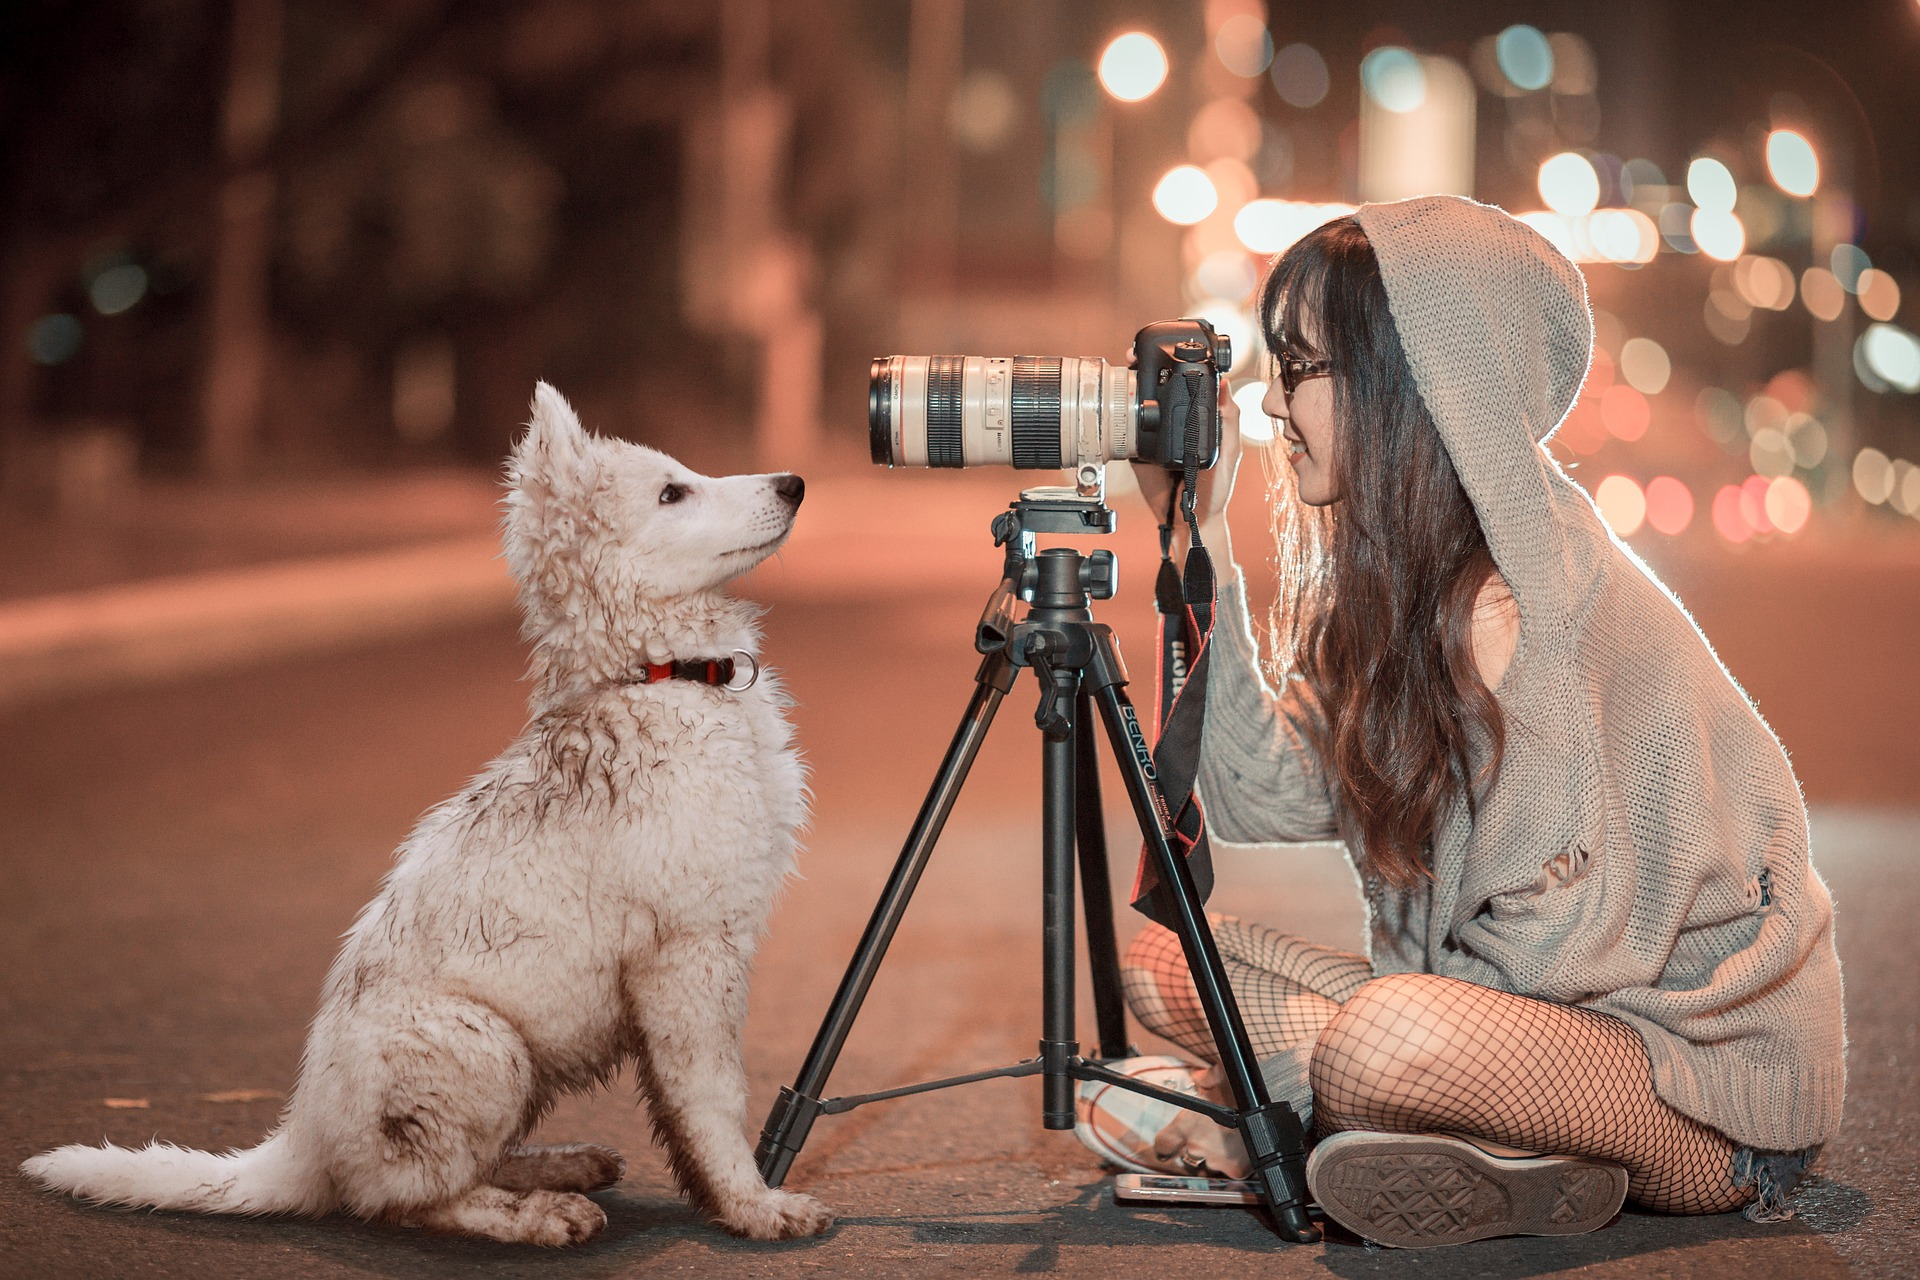 Woman on street with tripod showing how to teach a dog to pose for photo